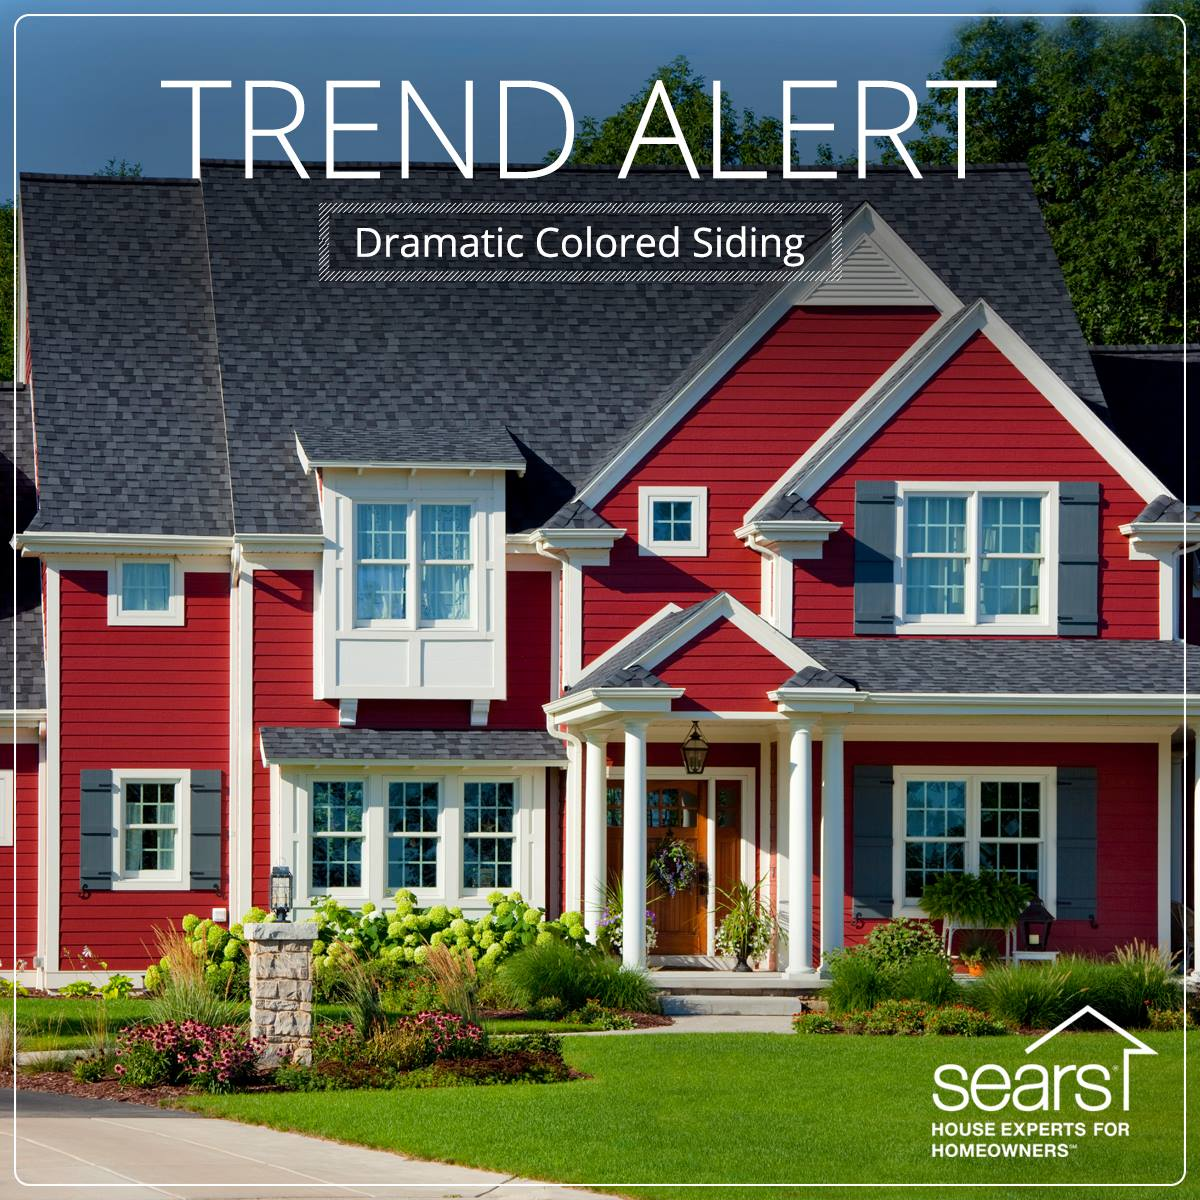 Dramatic Colored Siding from Sears